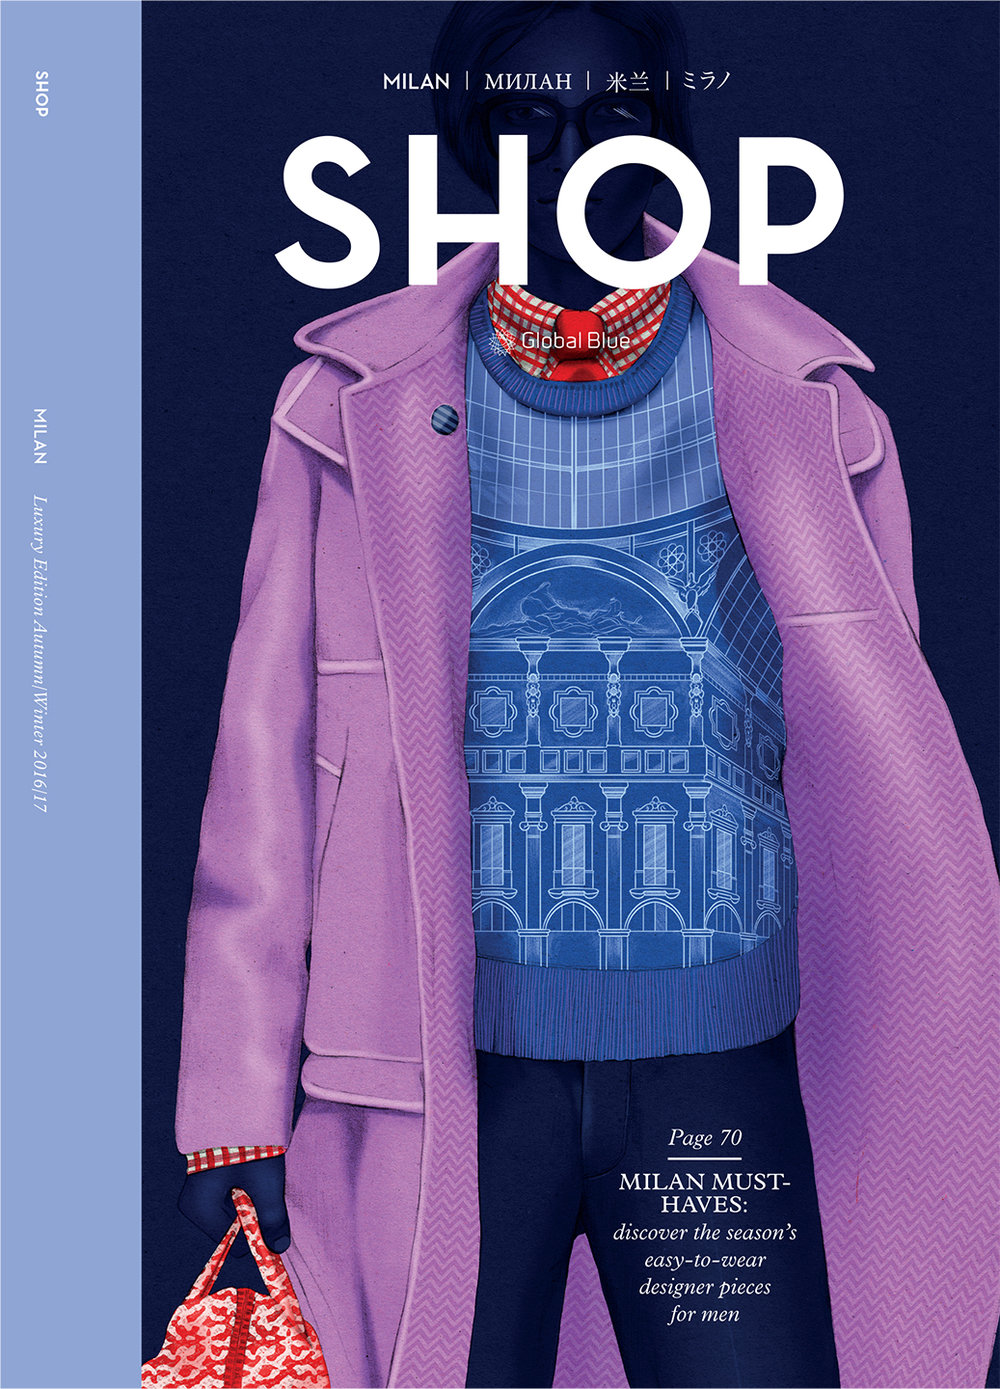 Kelly Thompson Men's Fashion Illustration SHOP Magazine cover Milan 2016 www.kellythompsoncreative.com